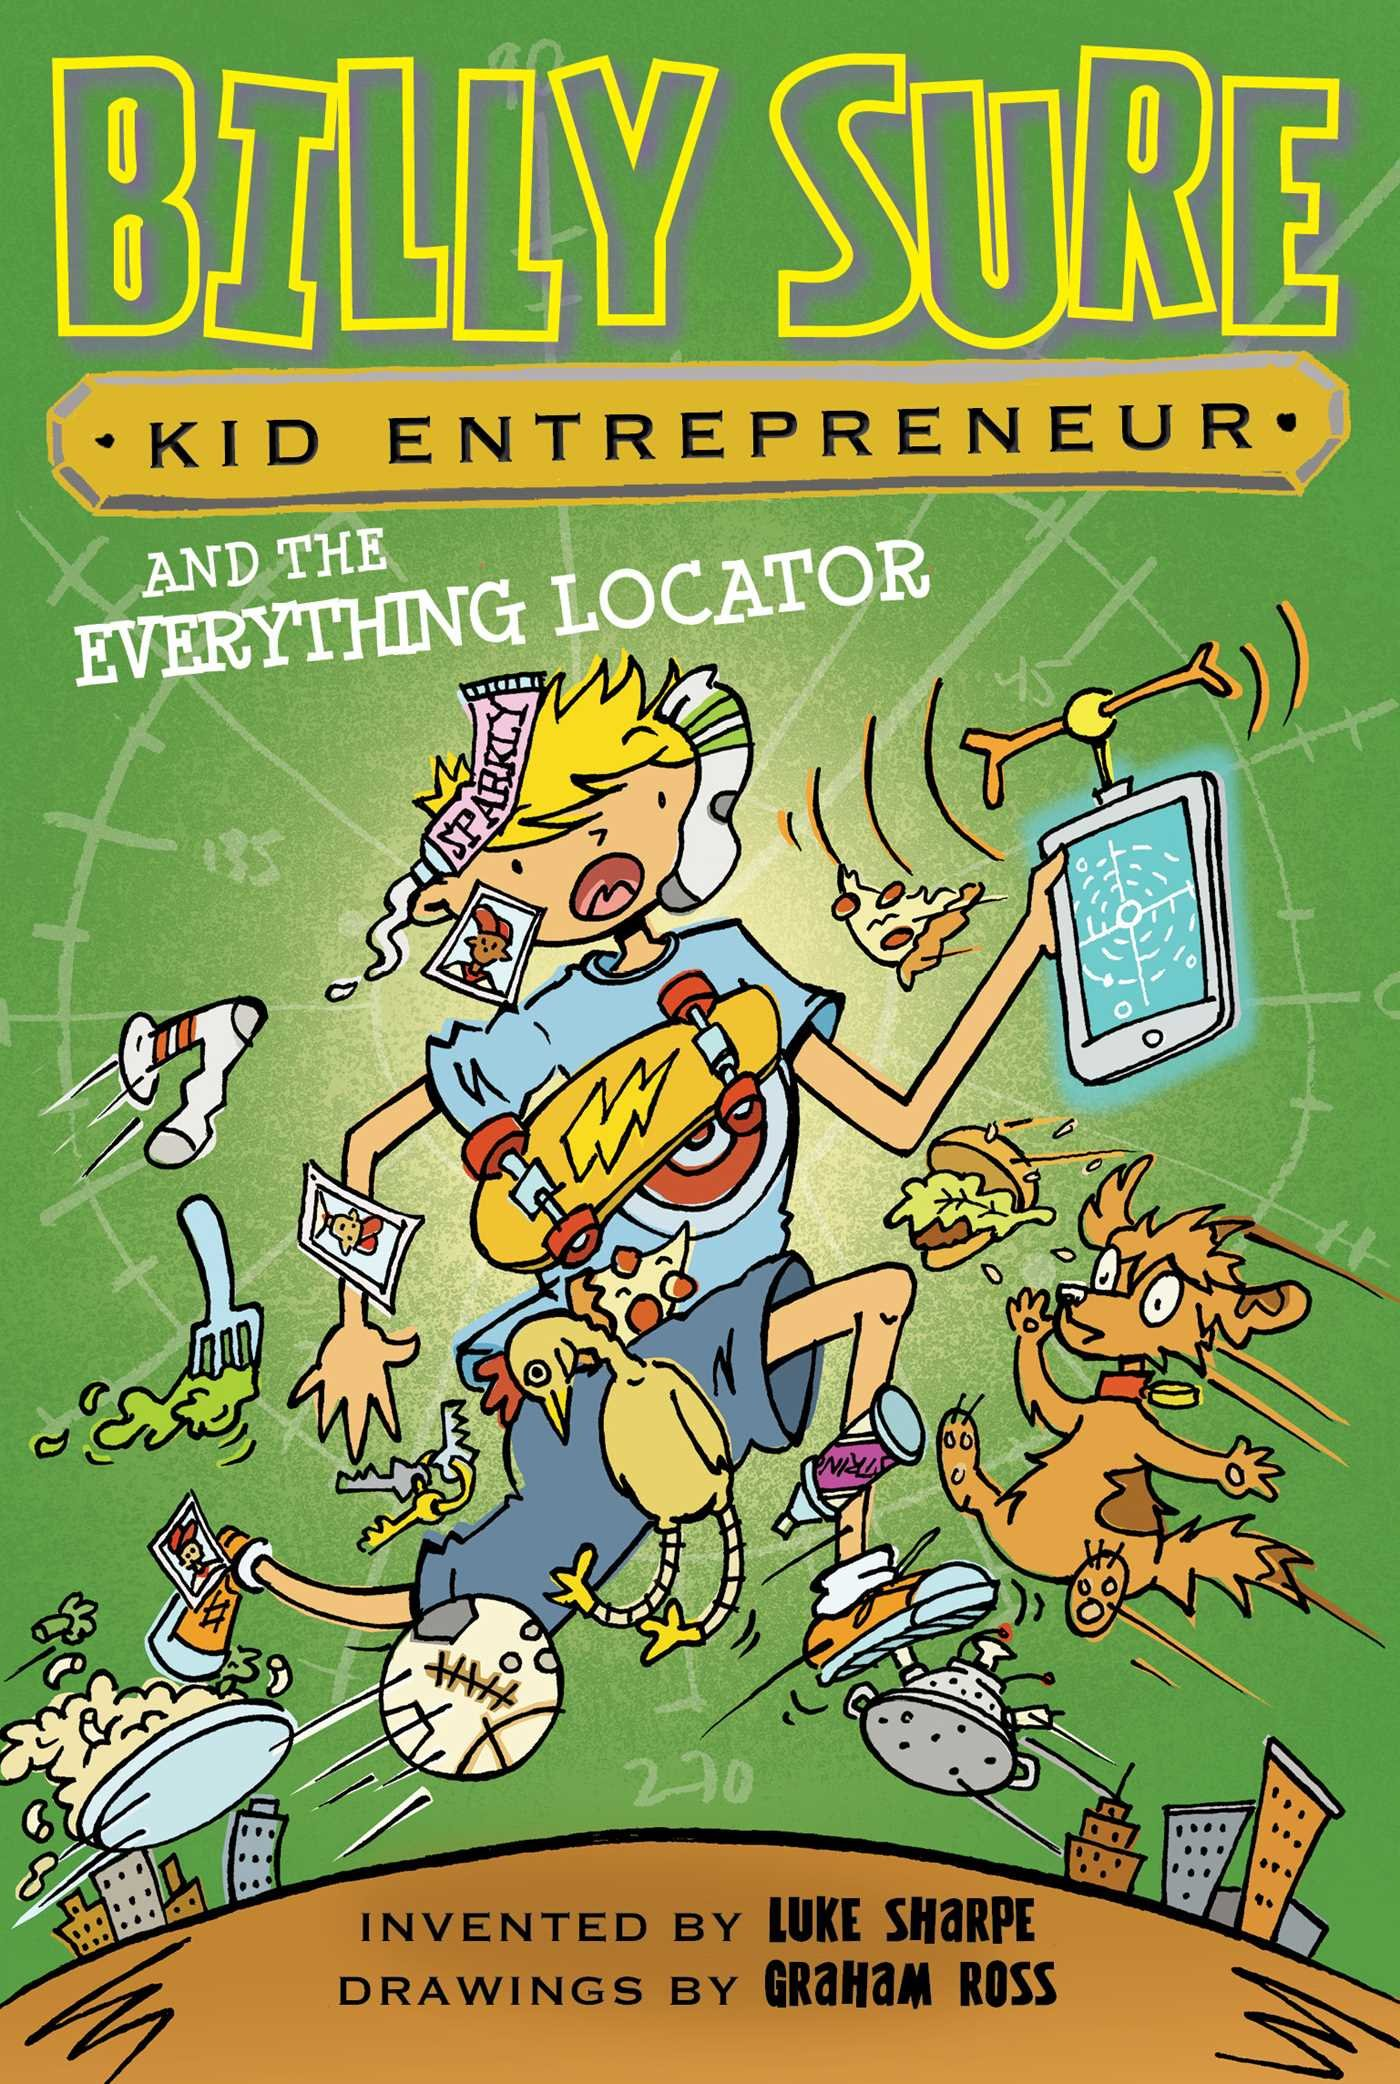 Download Billy Sure Kid Entrepreneur and the Everything Locator pdf